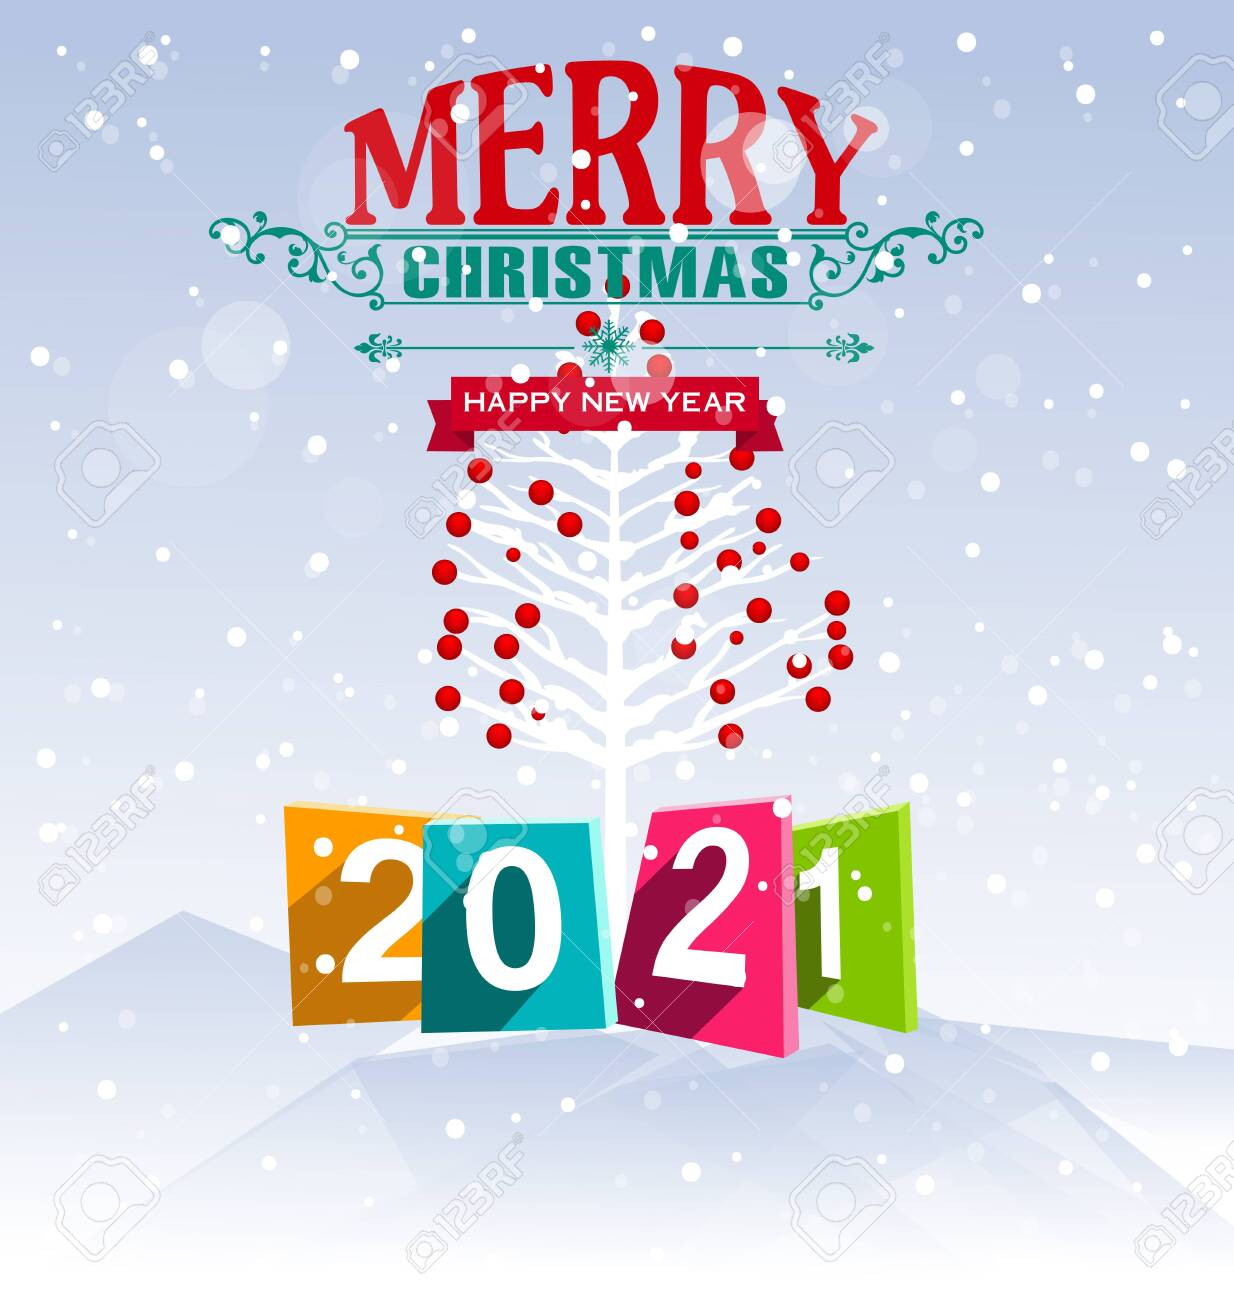 Merry Christmas 2021 Clipart Happy New Year And Merry Christmas 2021 Royalty Free Cliparts Vectors And Stock Illustration Image 144438670